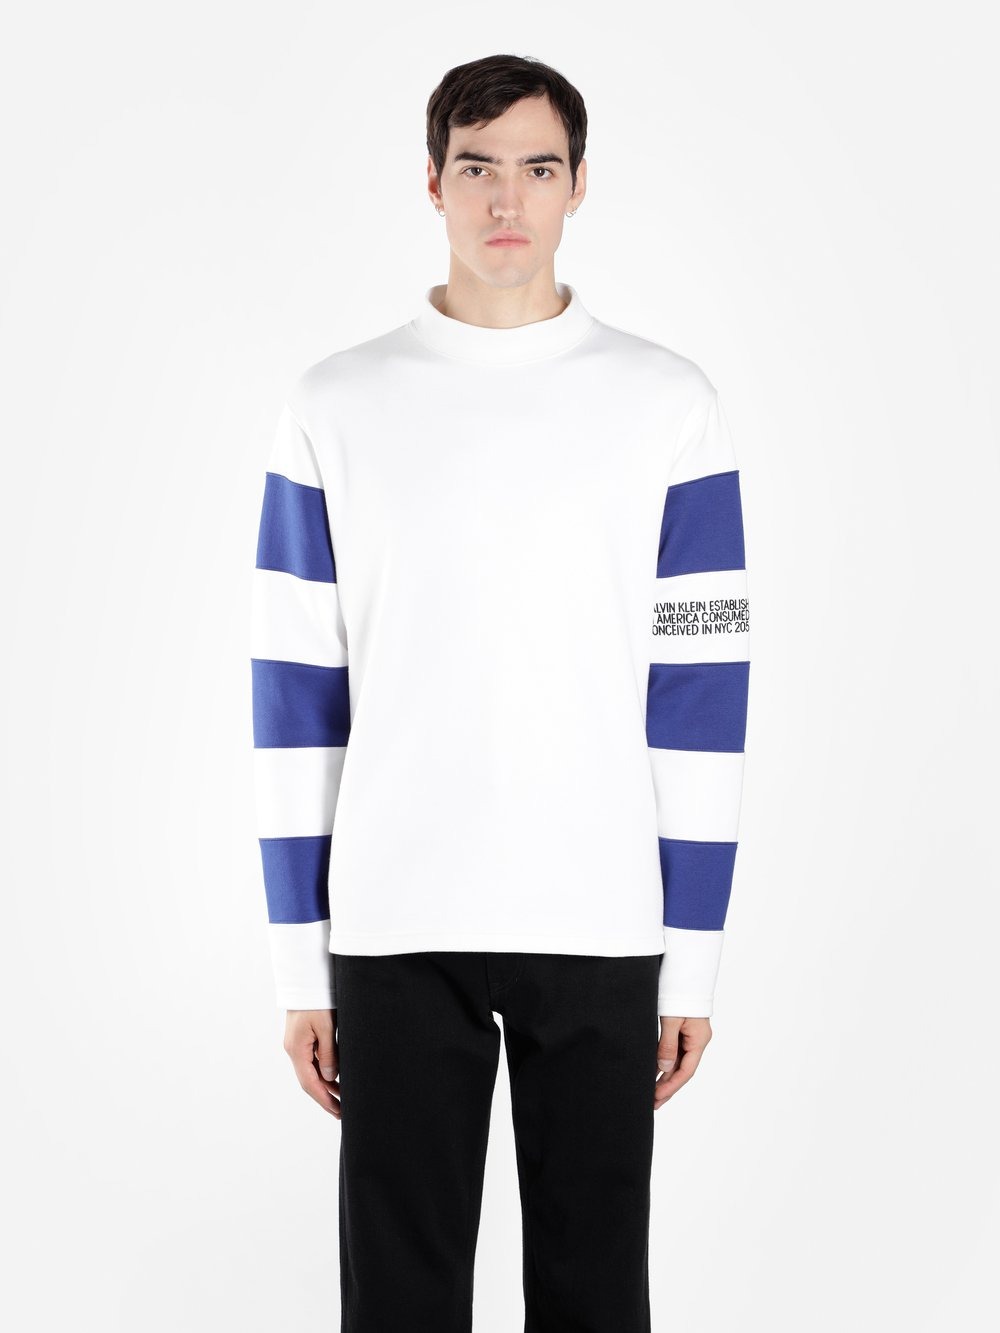 Cheap Buy Clearance Amazing Price Embroidered Striped Cotton-jersey Mock-neck Sweatshirt CALVIN KLEIN 205W39NYC Deals Sale Online sSCu9VrcBl